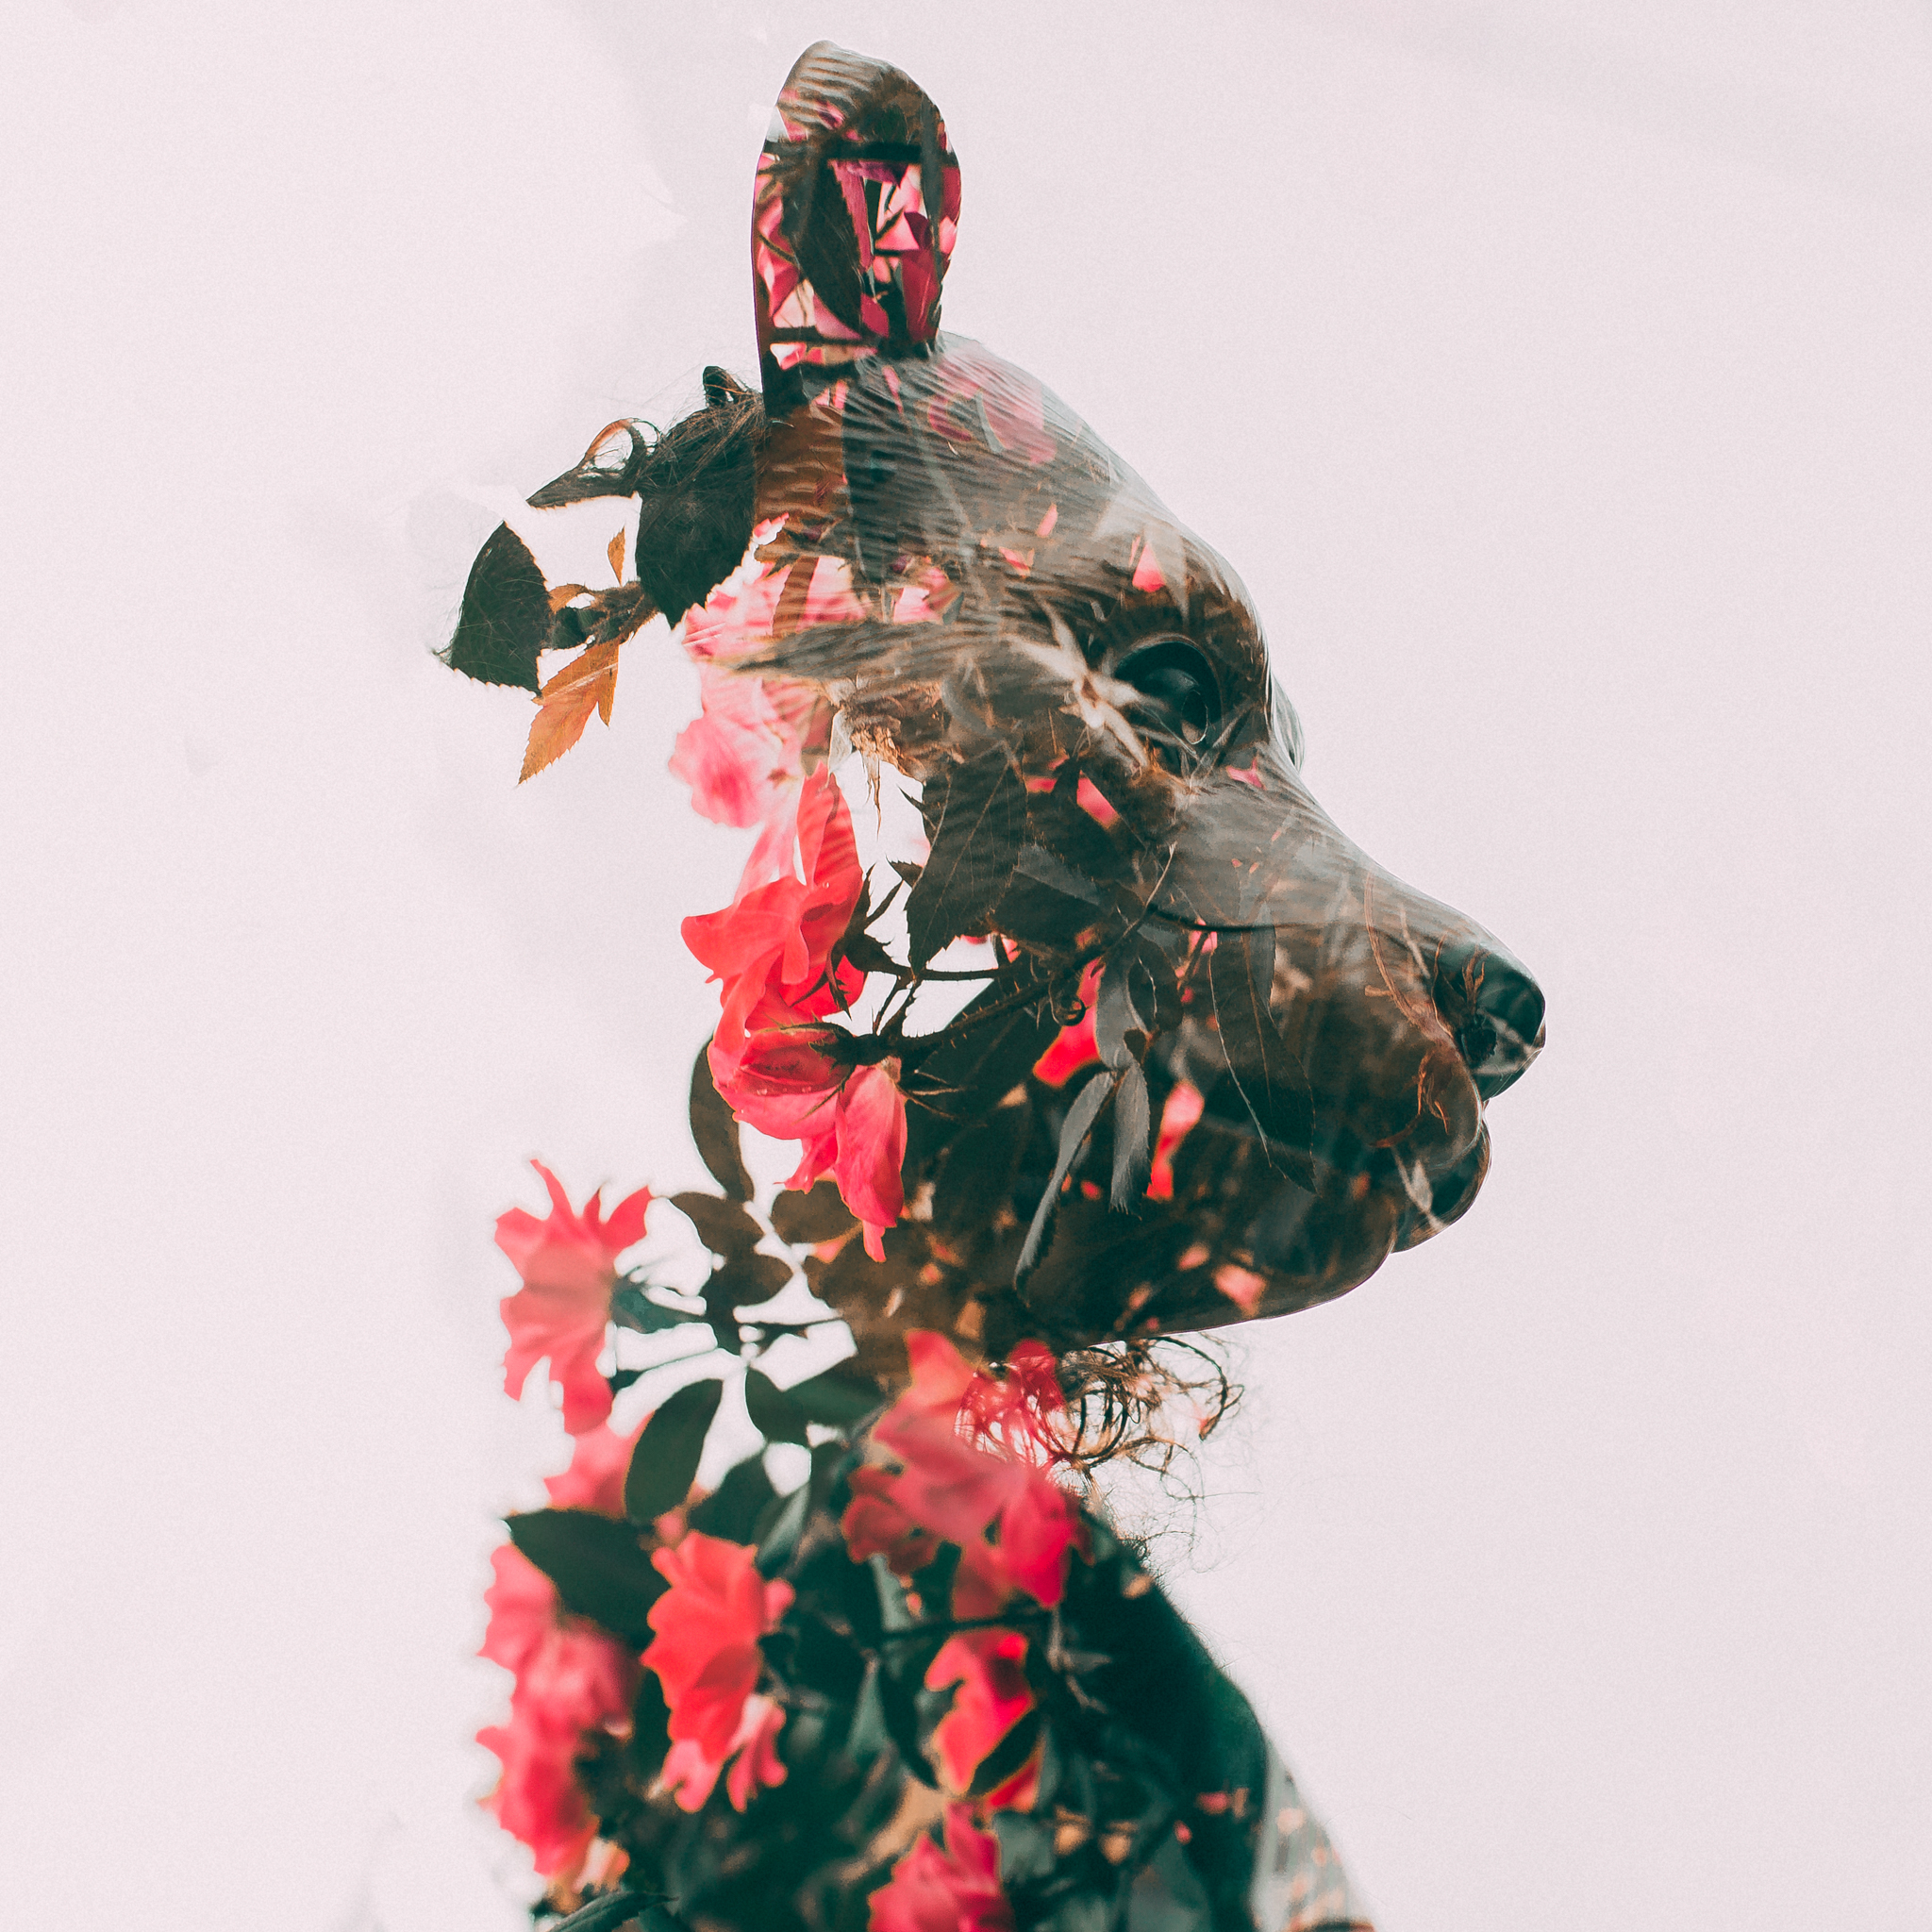 double exposure-36-Edit.jpg